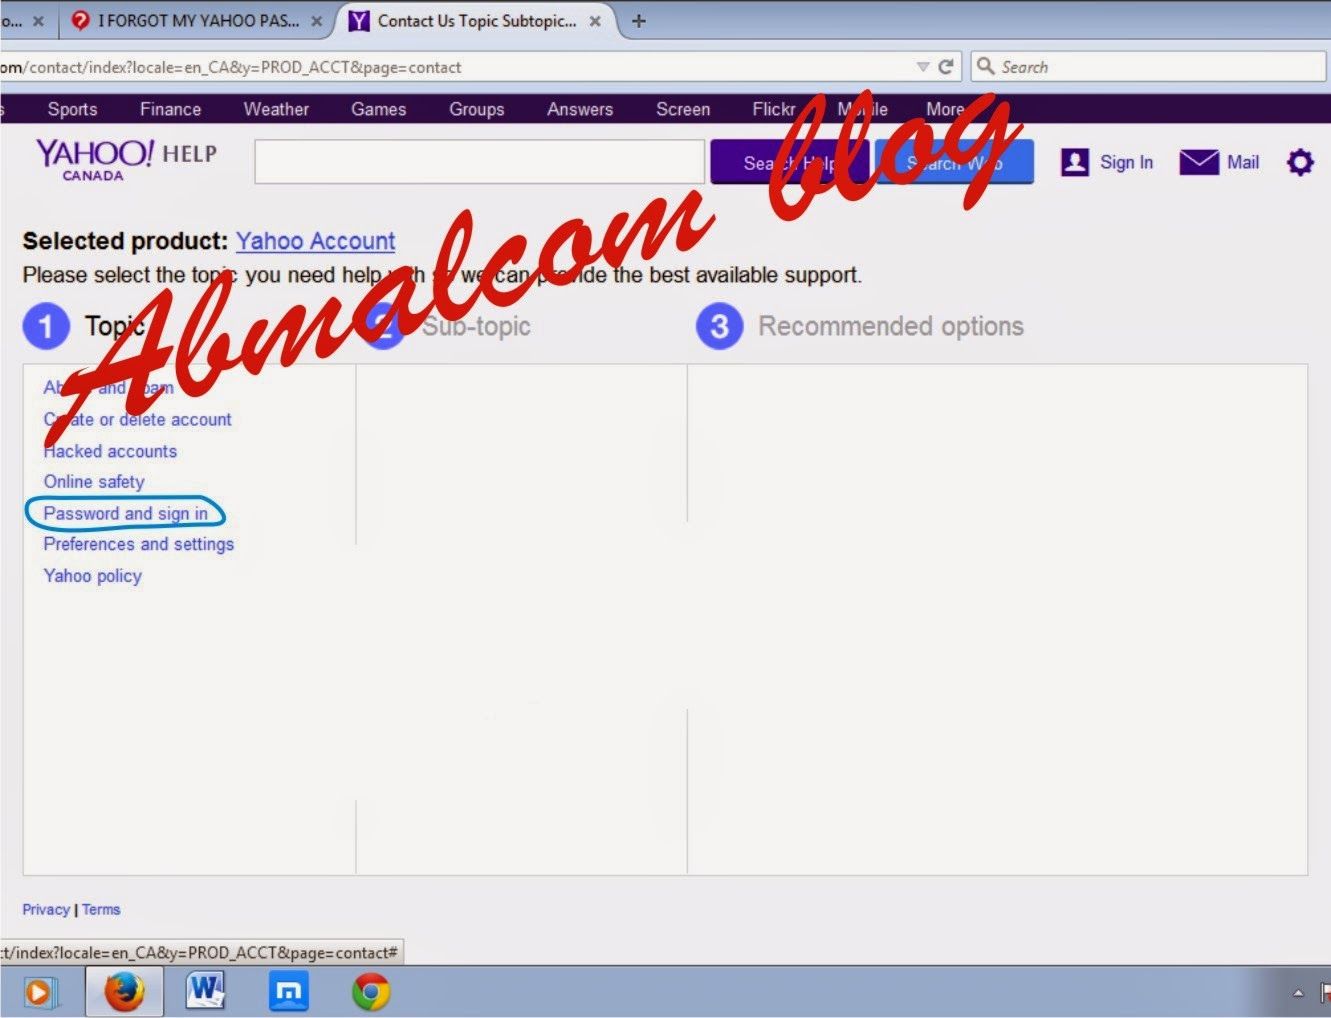 what to do if i forgot my yahoo password and security question